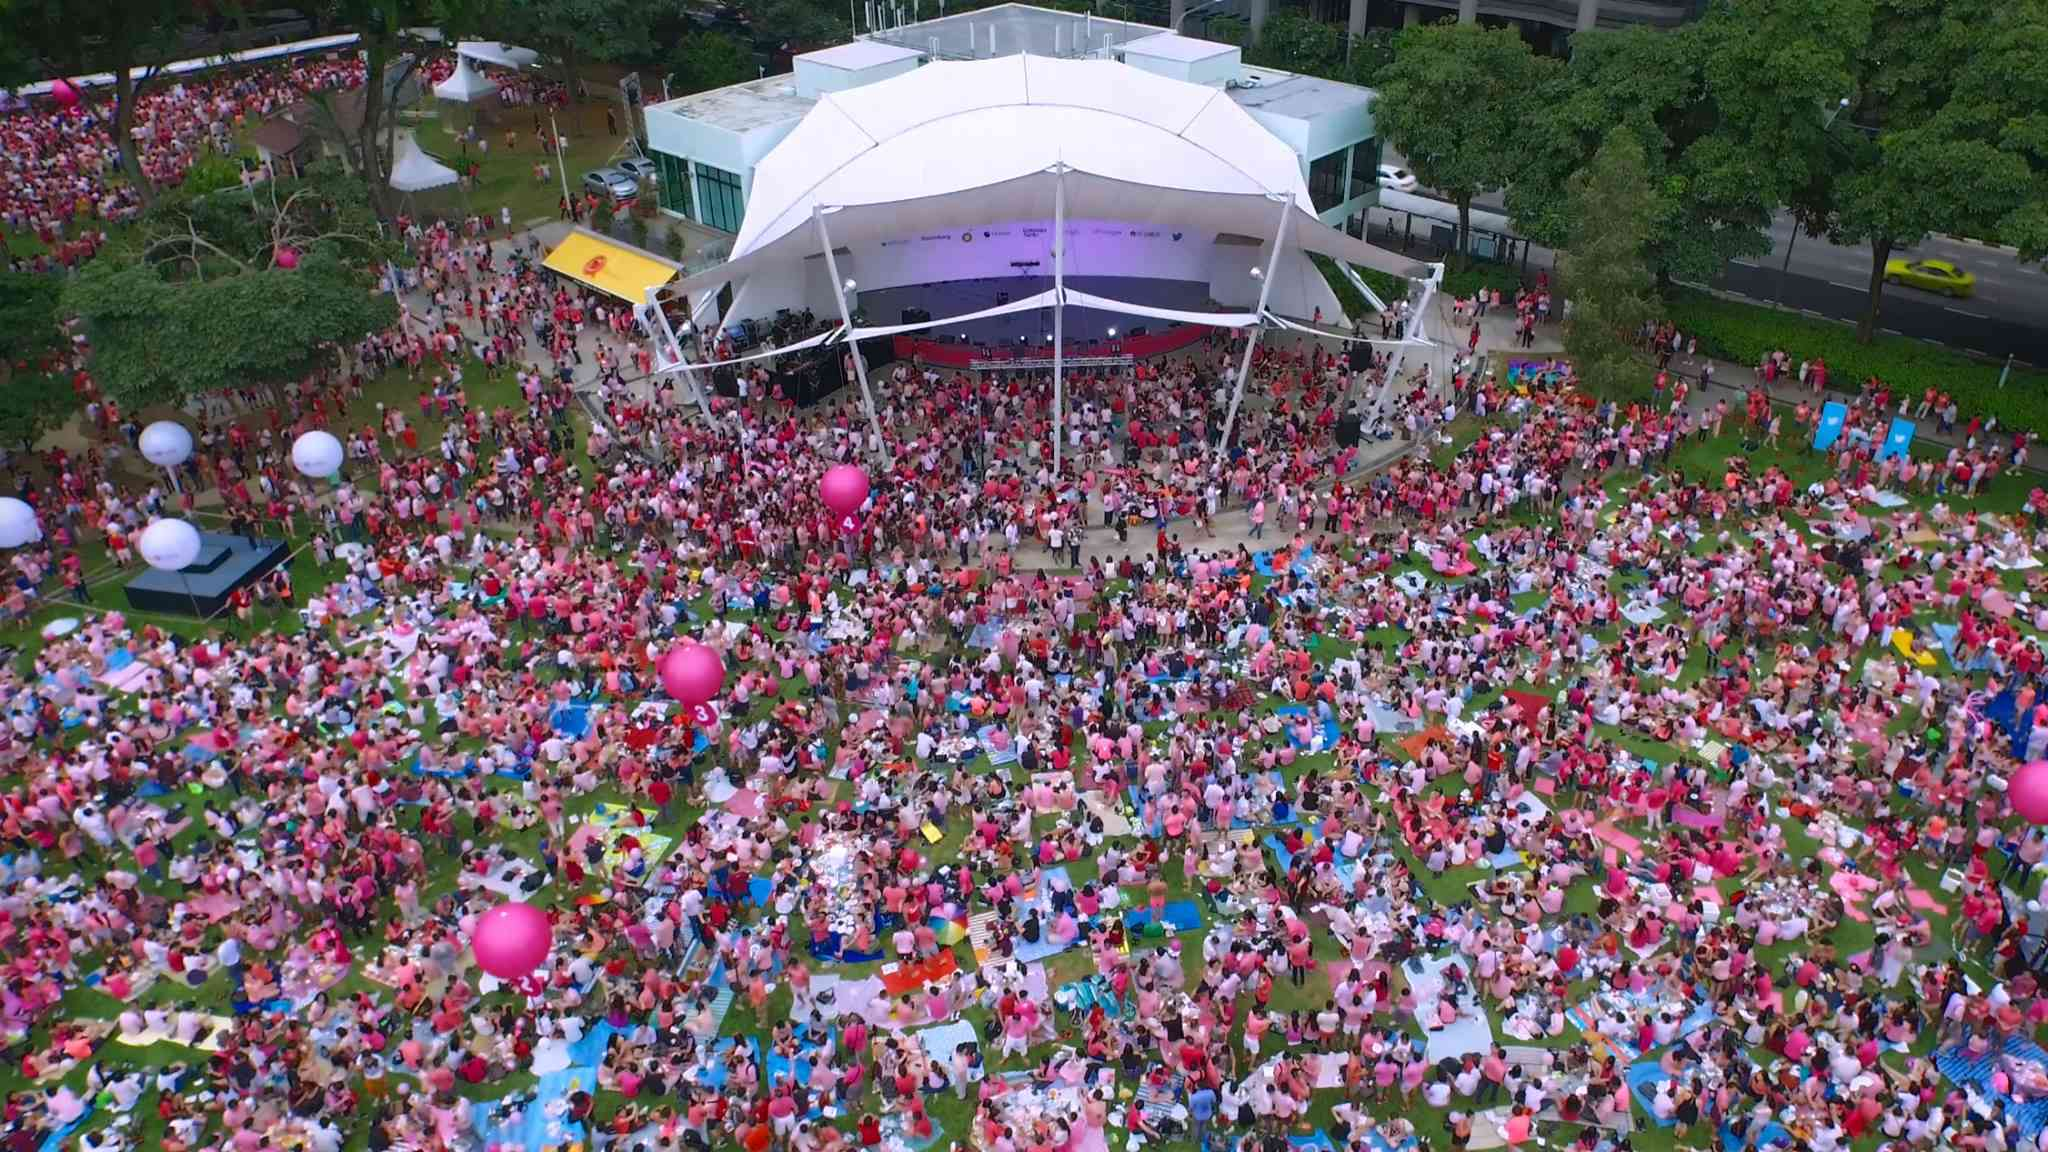 Aerial shot of people in pink gathering at the festival